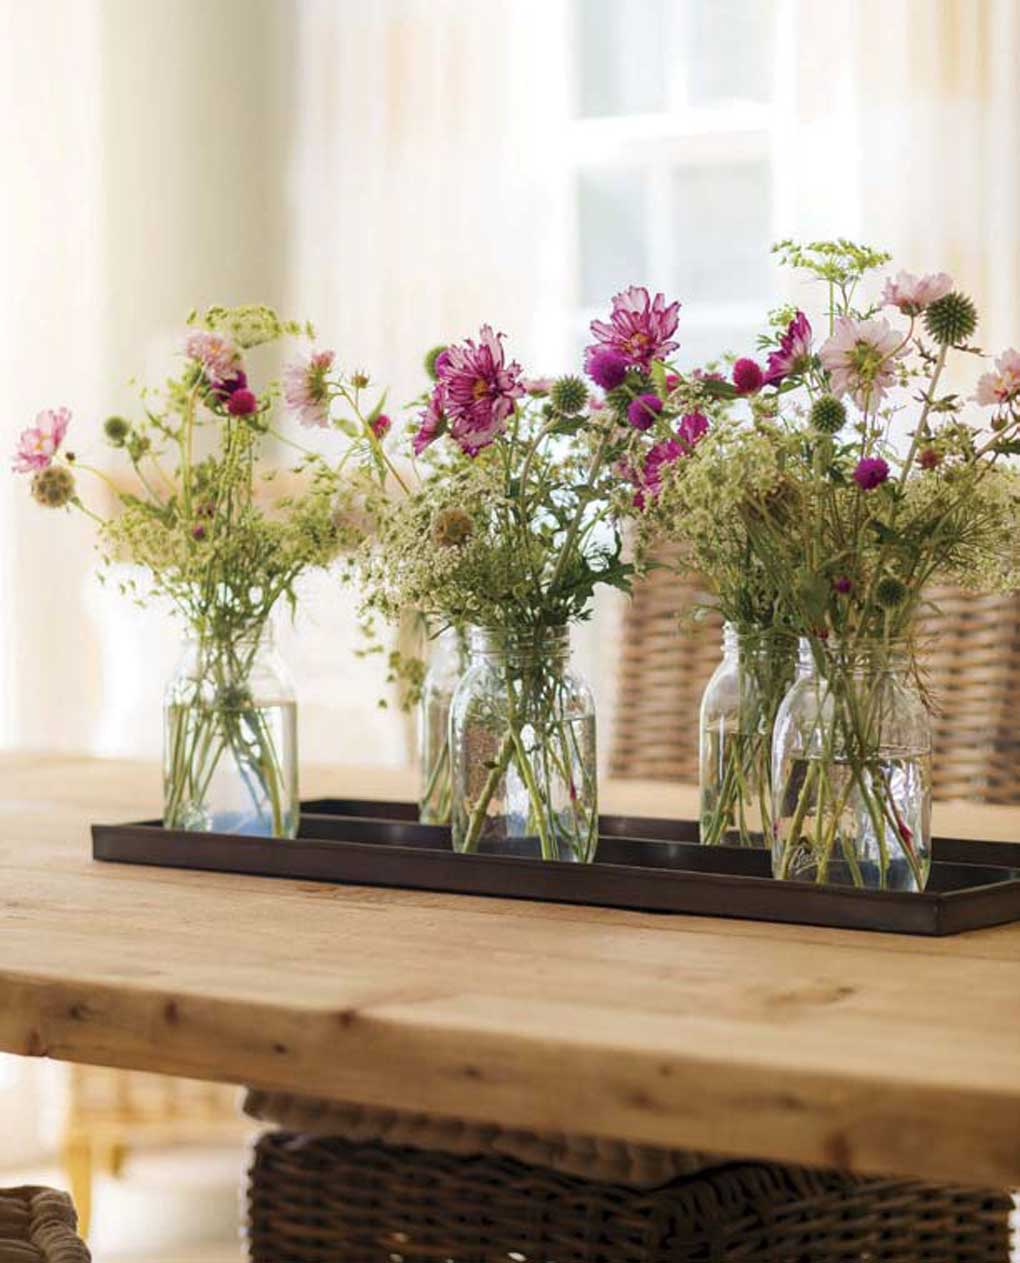 Mason jars filled with fresh-cut white and purple flowers placed together as a centerpiece on a farmhouse dining table.